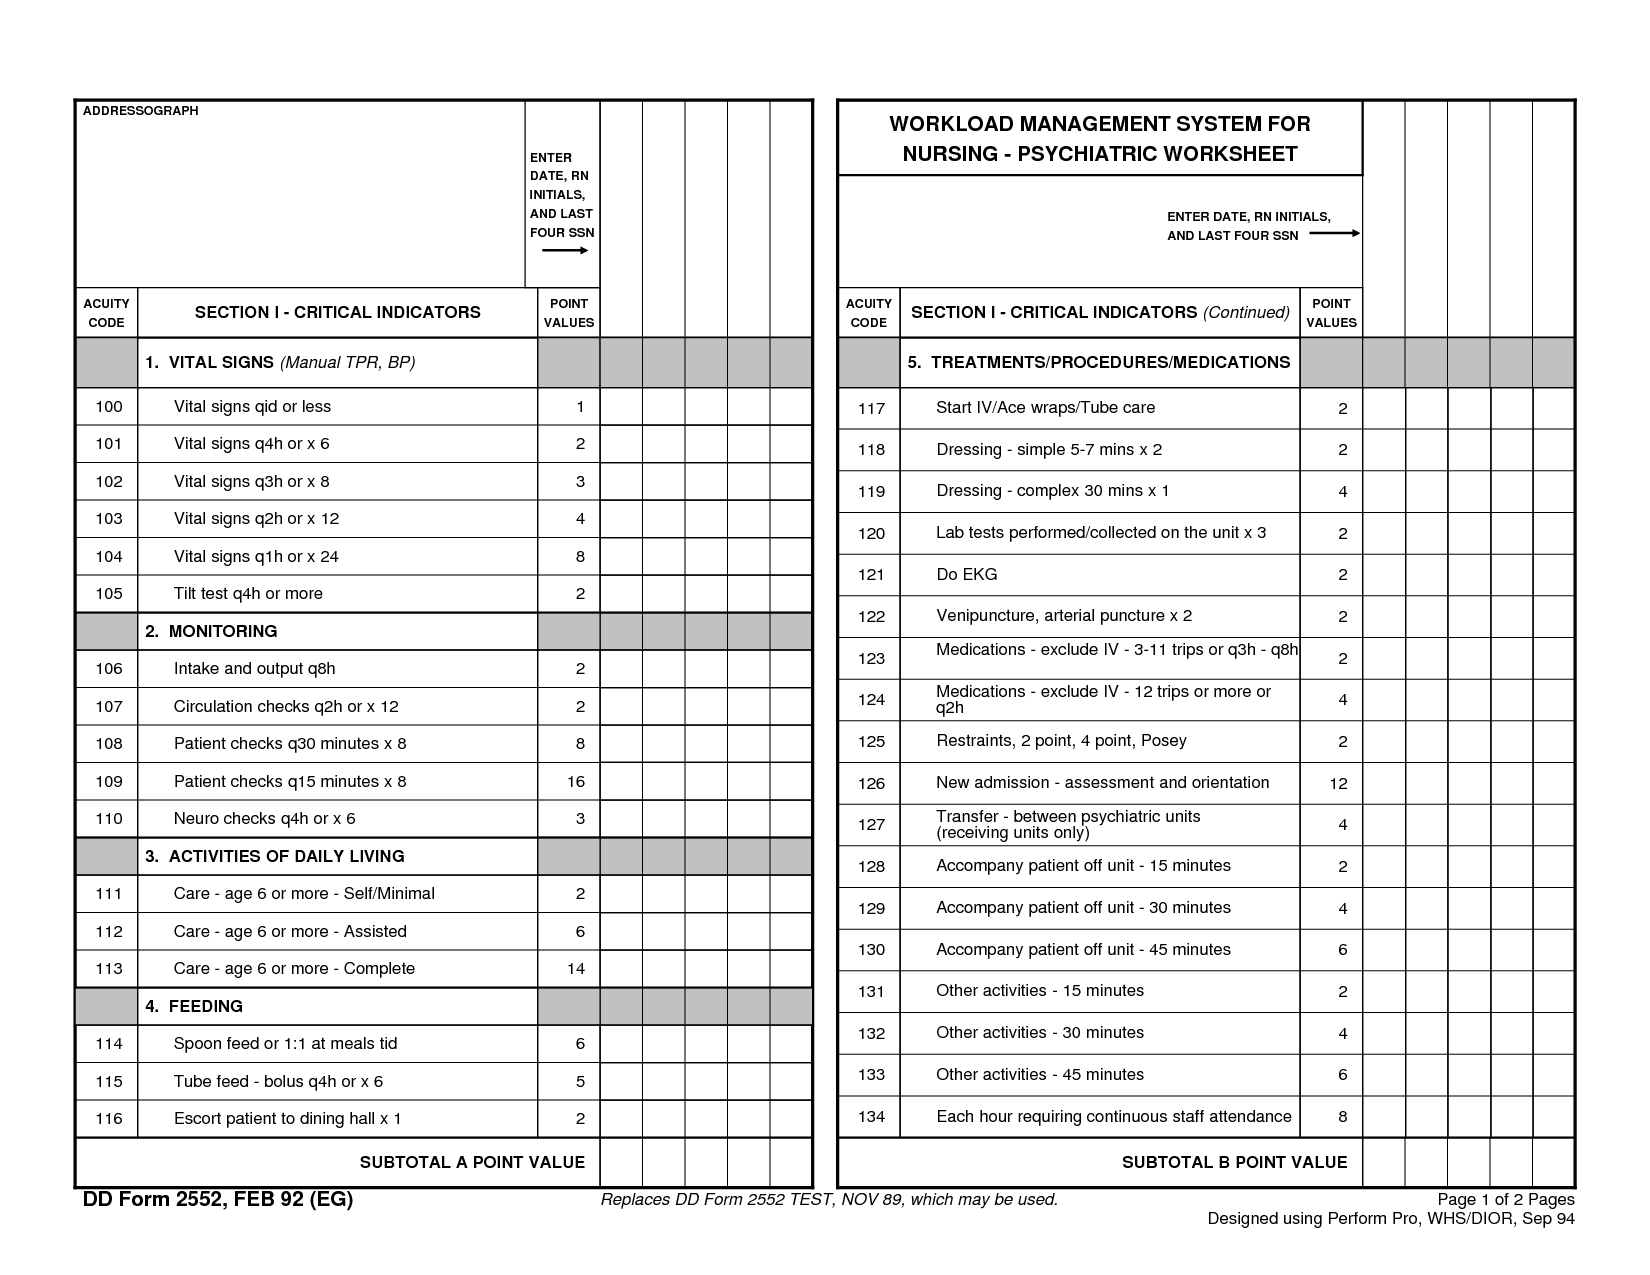 Workload Assessment Template Dd Workload Management System For Nursing